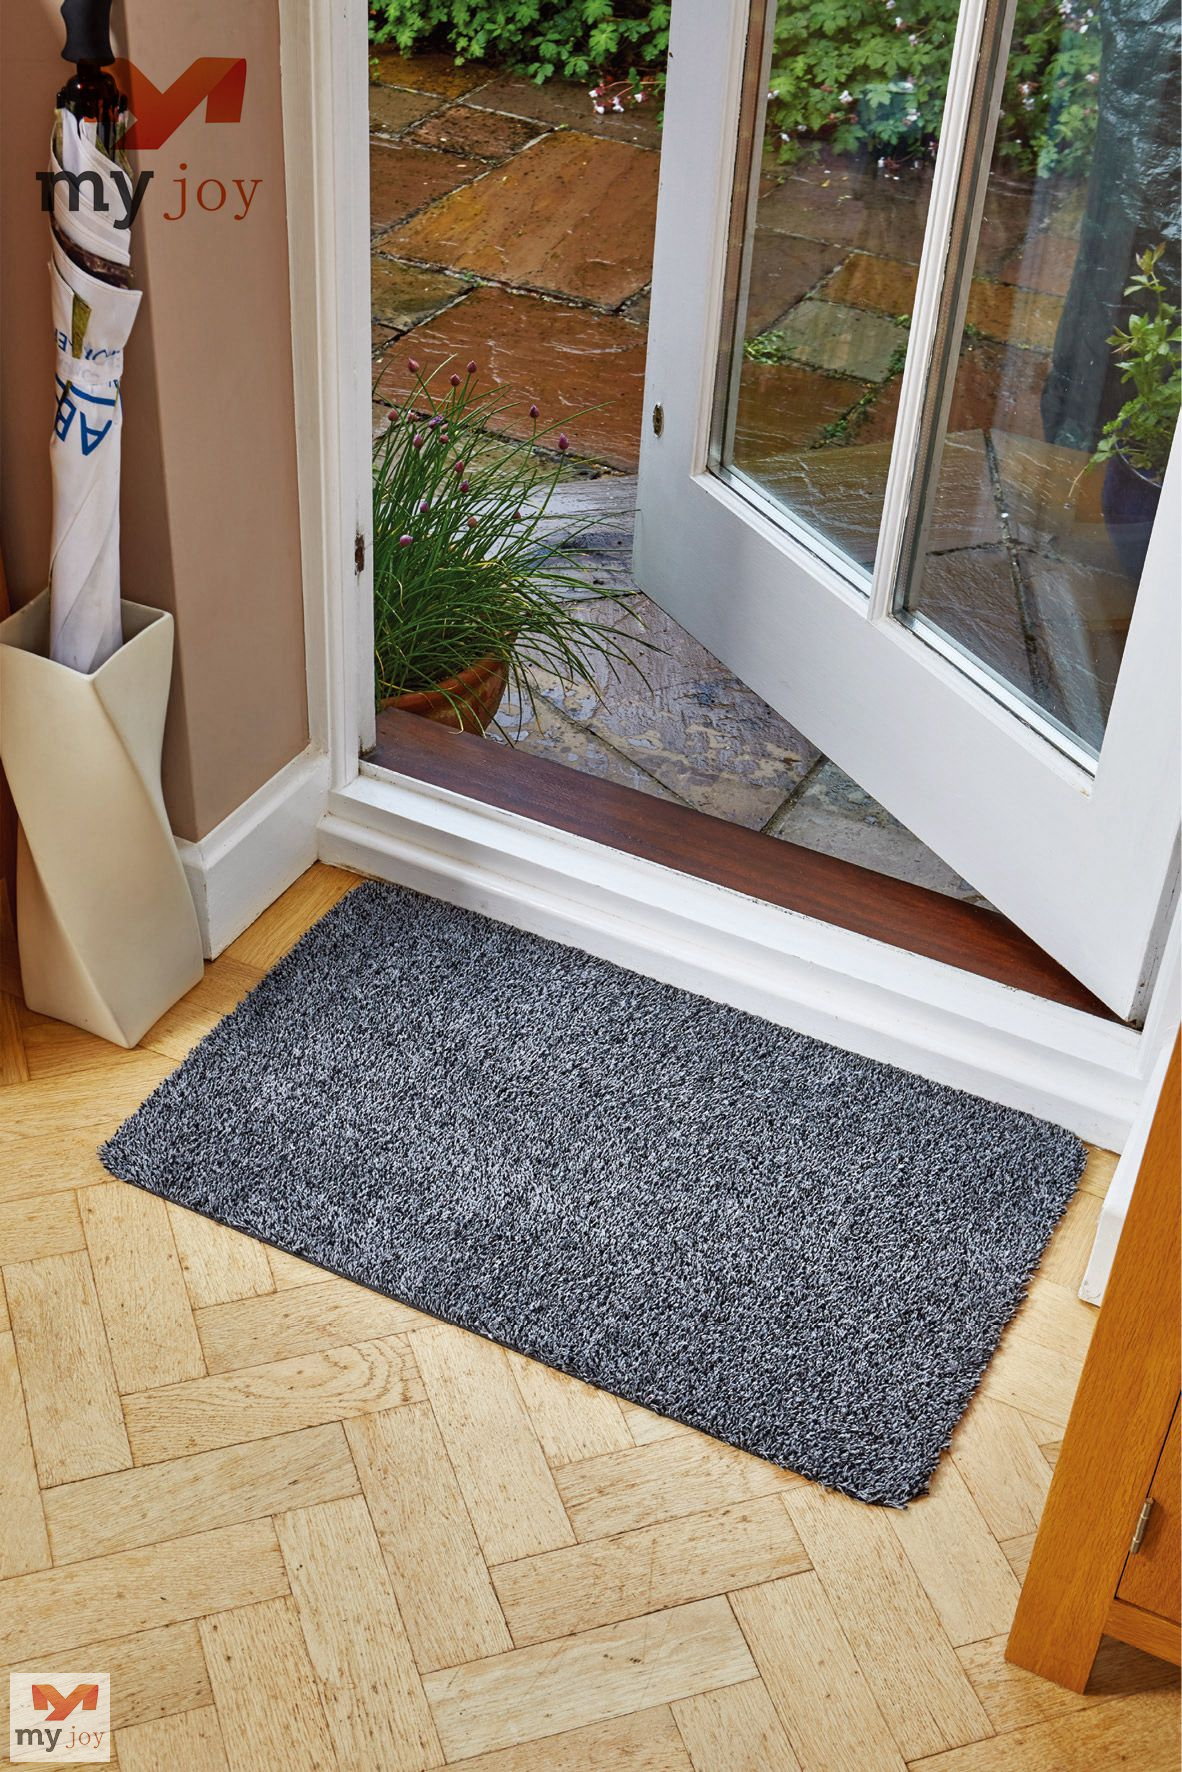 door water mat bungalowflooringwaterguardcordovaindooroutdoormat options cordova guard indoor white cfm bungalow mats hayneedle outdoor flooring product